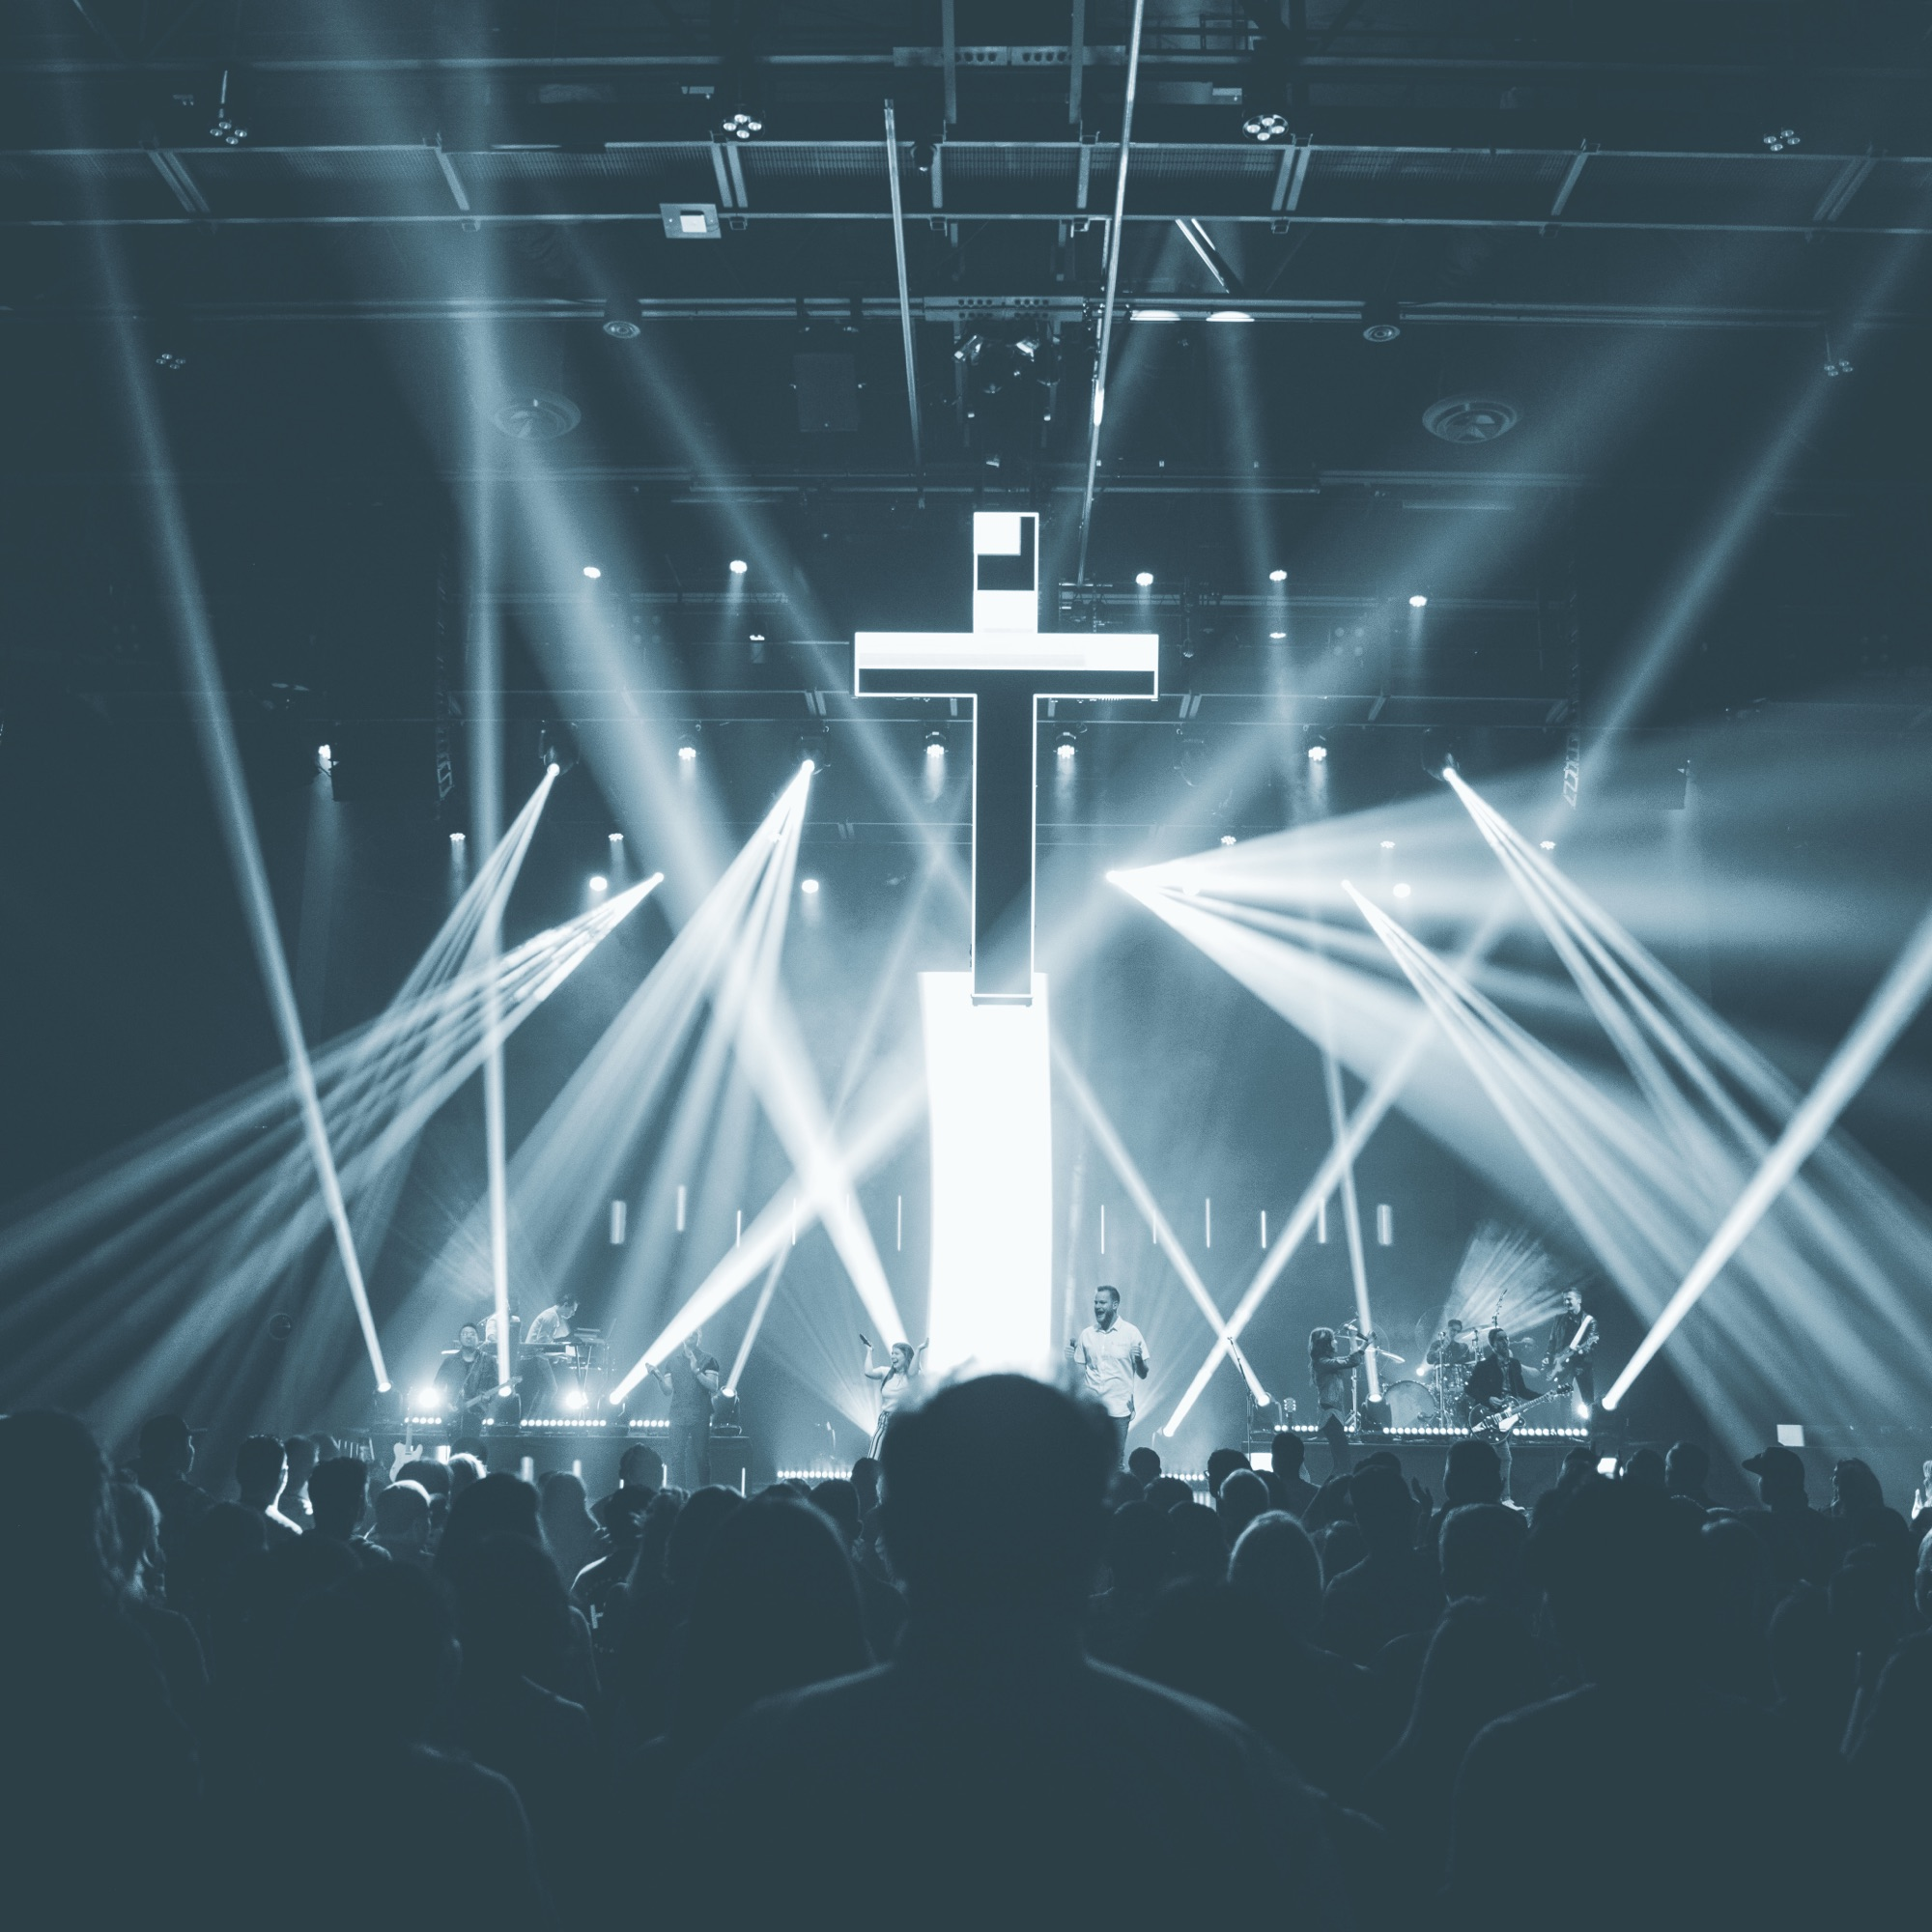 A cross lit up on a stage